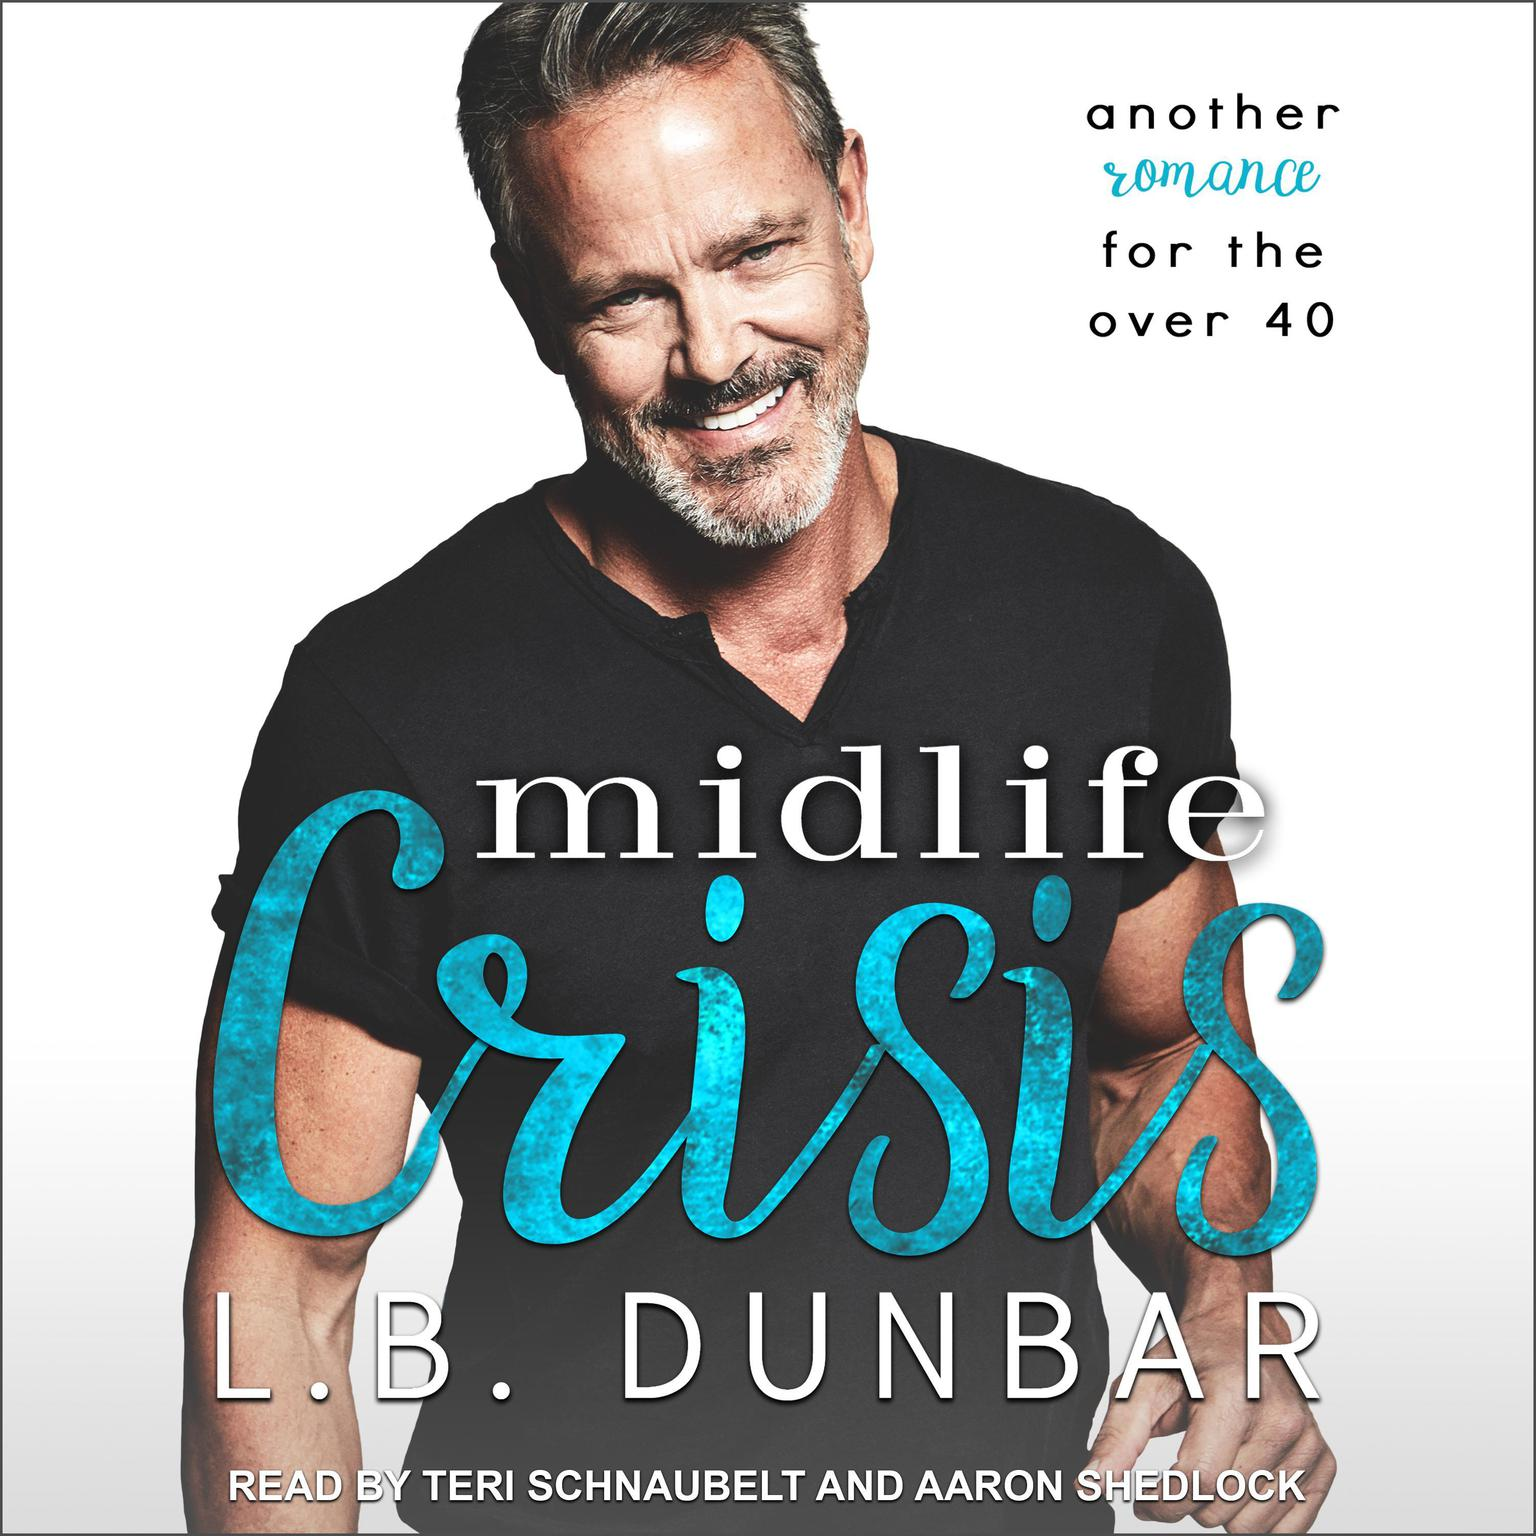 Printable Midlife Crisis: Another romance for the over 40 Audiobook Cover Art